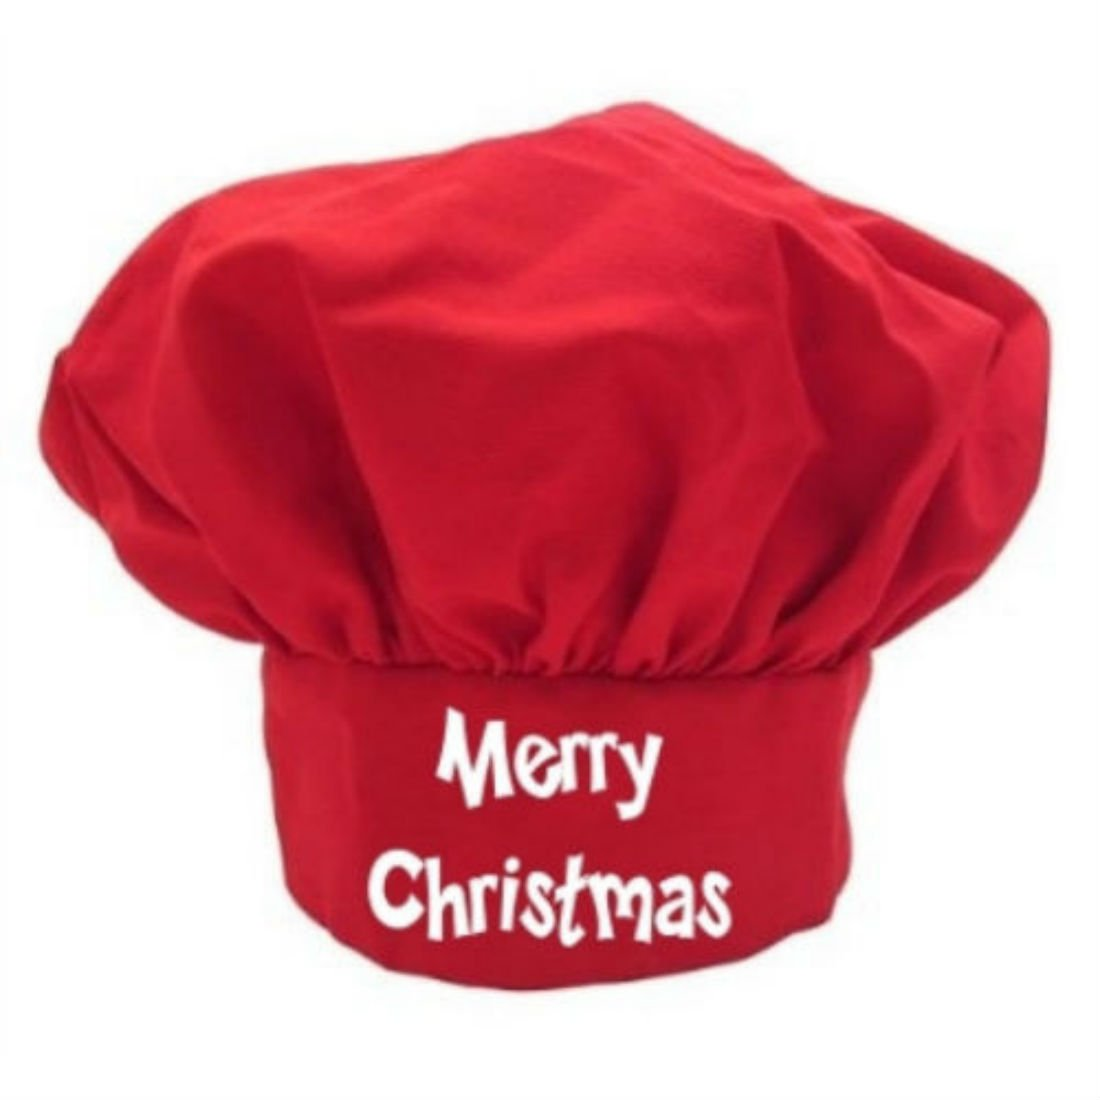 Merry Christmas Red Chef Hat | Red Holiday Toques by Unknown